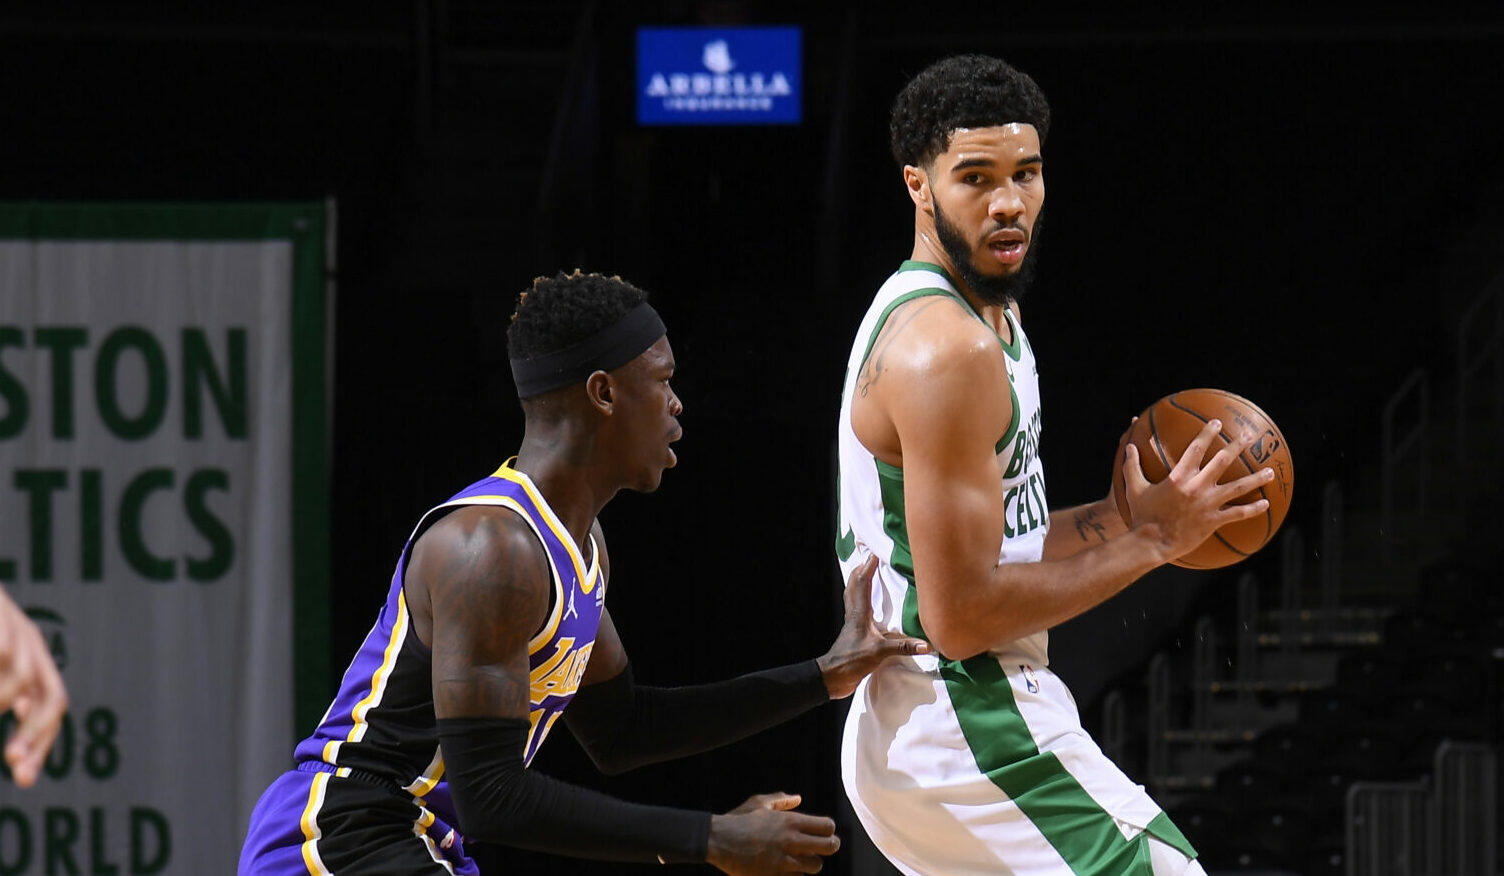 Tatum, Celtics look to stay hot vs. Lakers